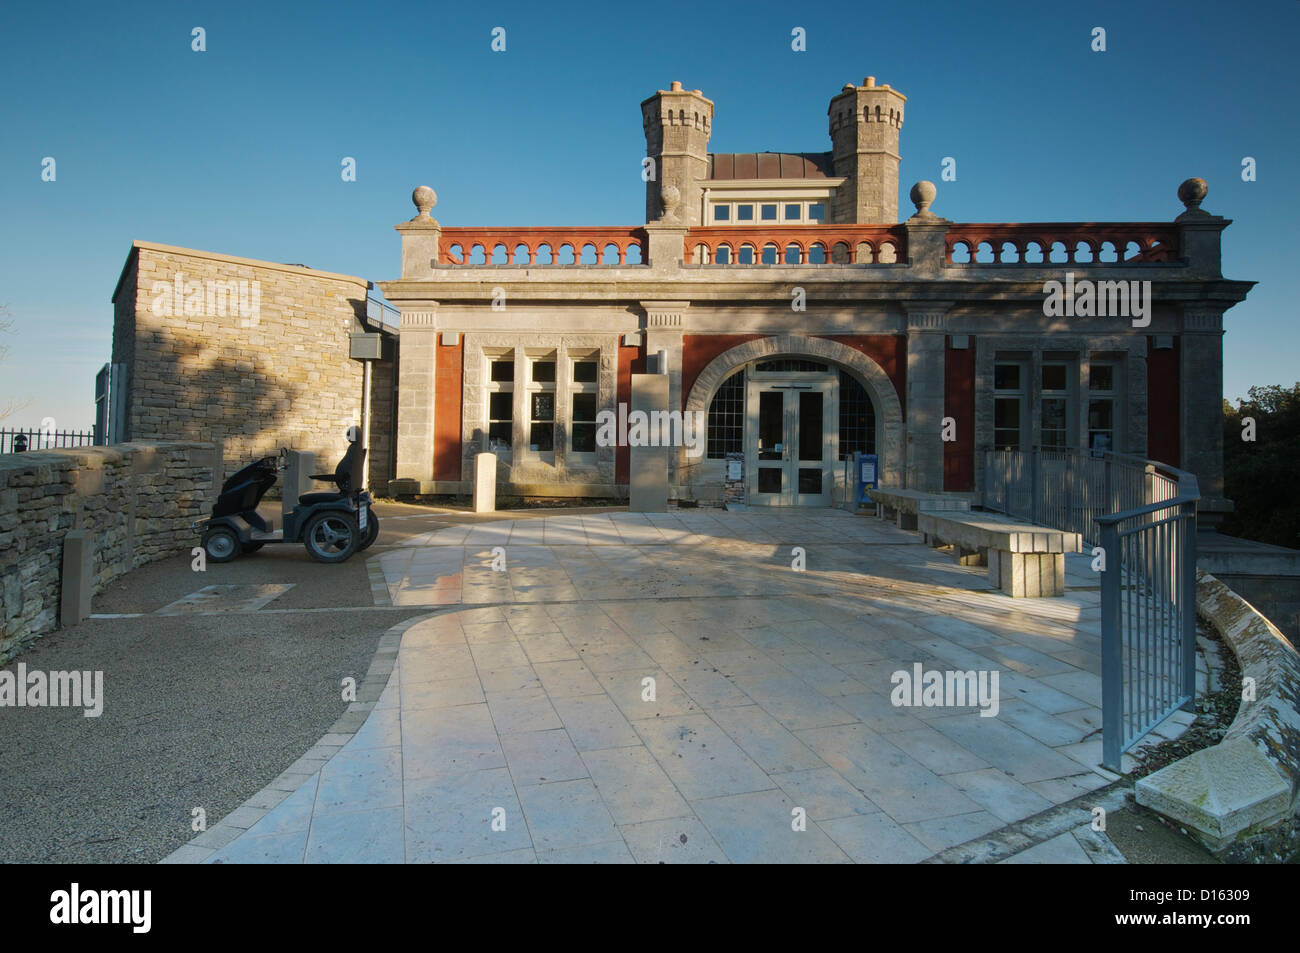 Main entrance to Durlston castle, Swanage, Dorset, UK, photographed on the day of their official BBC1 TV award ceremony - Stock Image